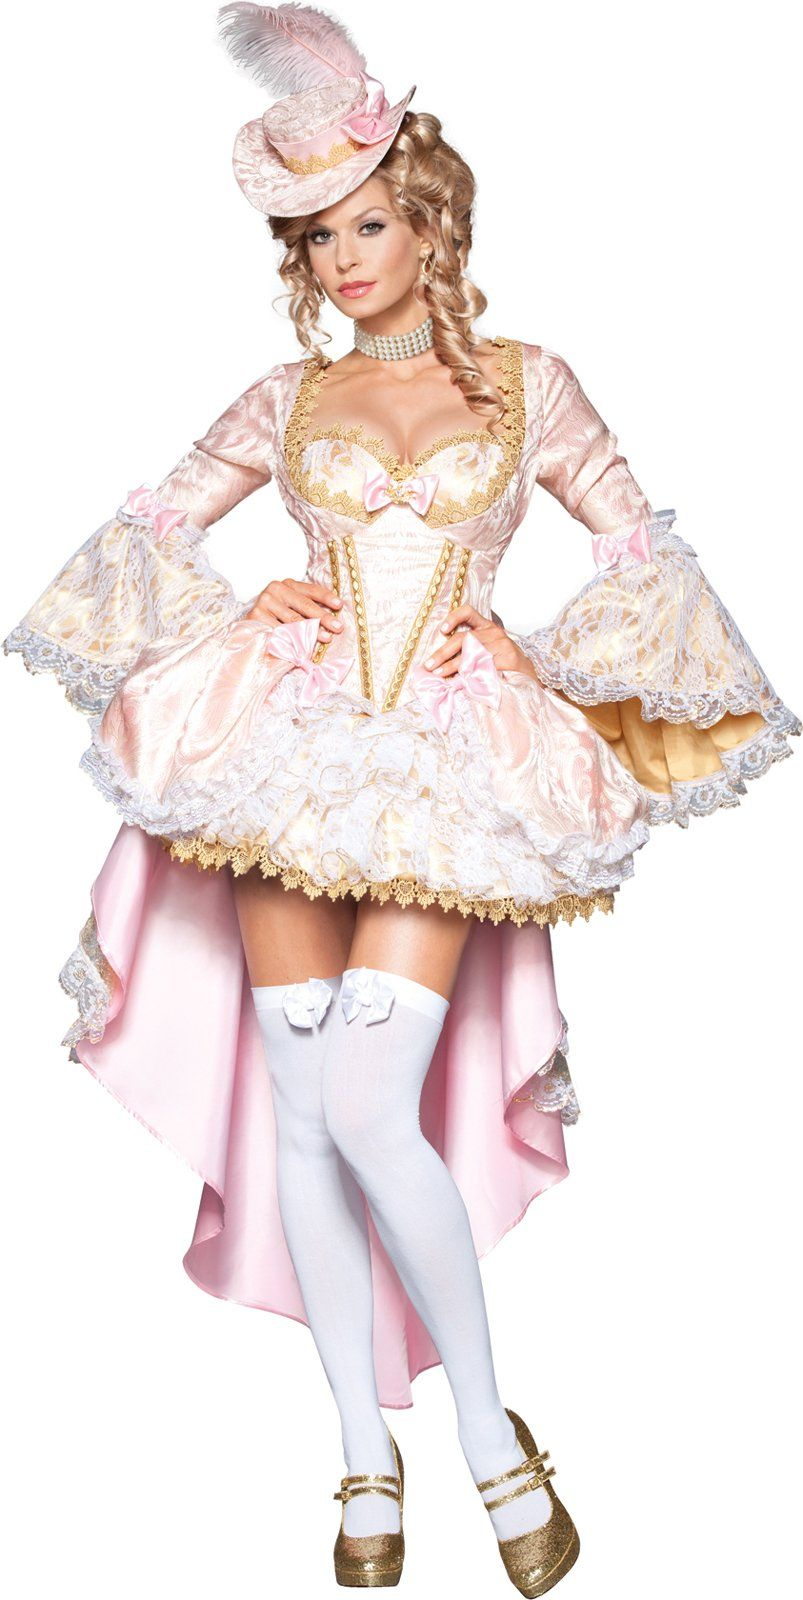 Marie Antoinette Adult Costume | French style, Costumes and Marie ...